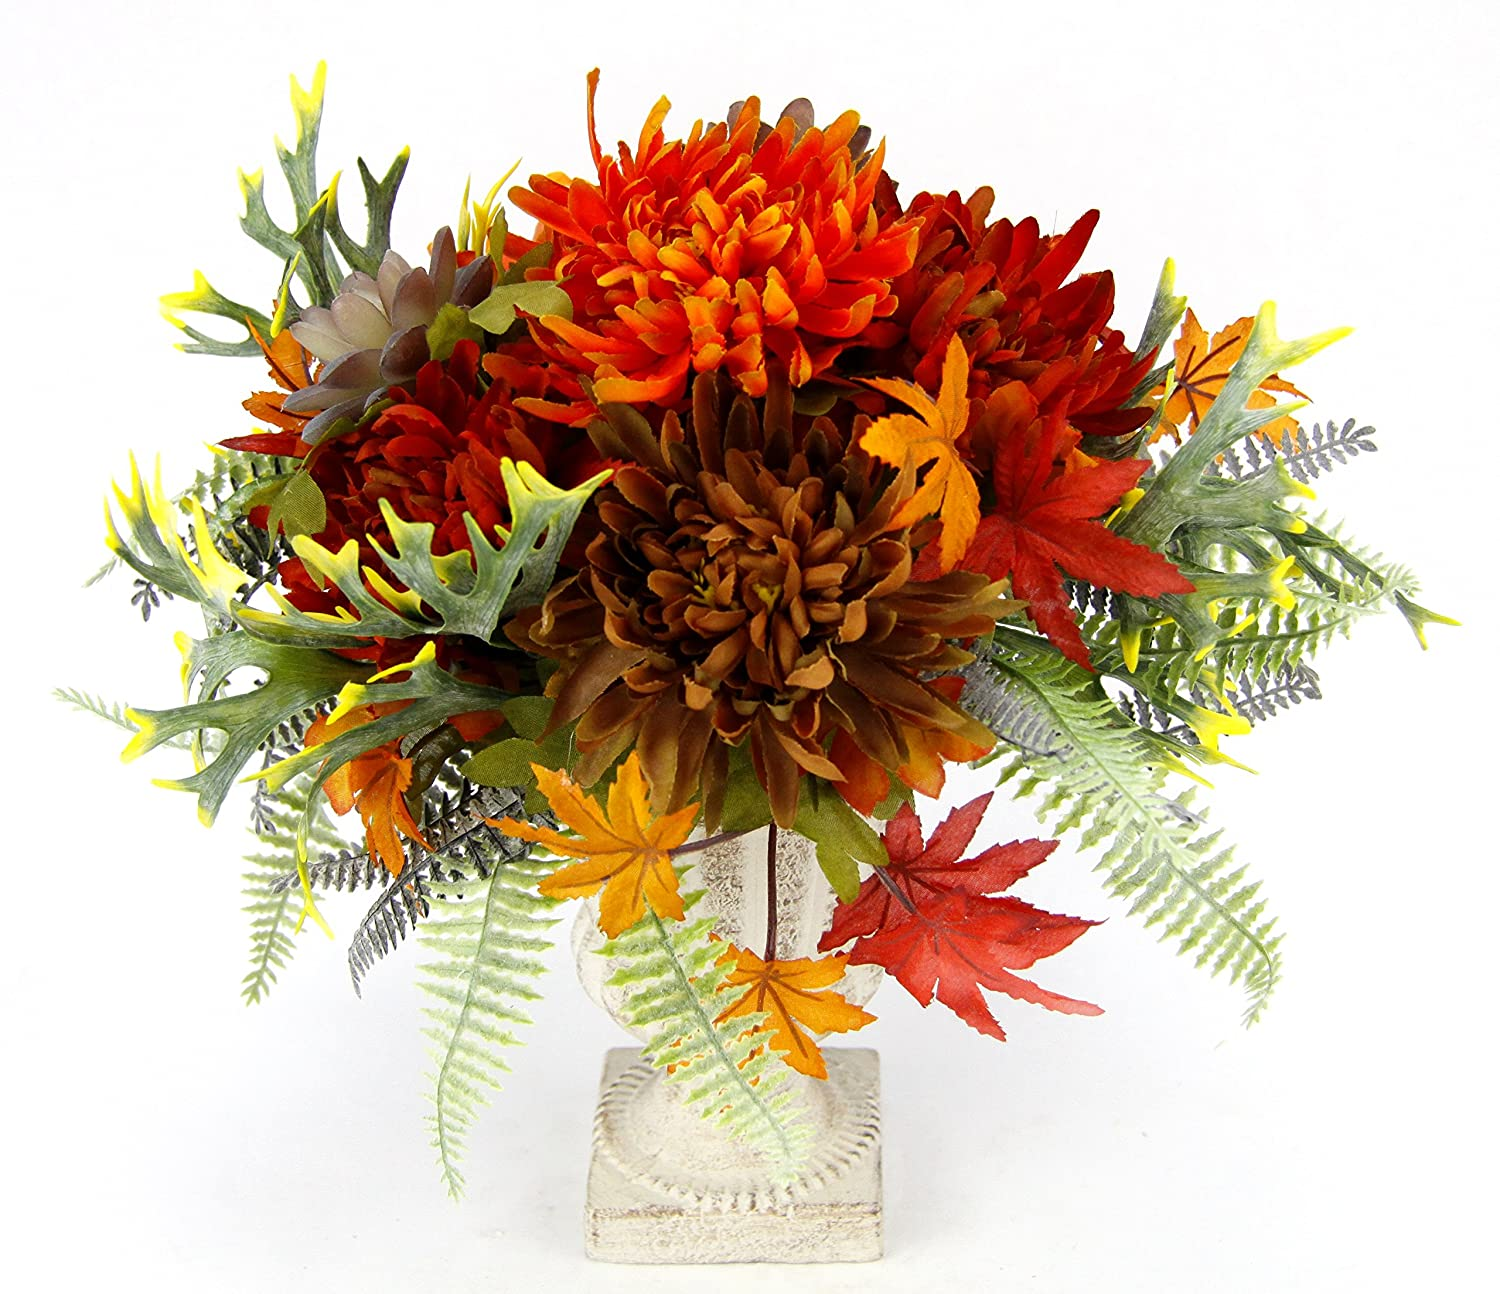 Flair Flower Chrysantheme/Dahlie im Pokal, Stoff, orange, 31 x 22 x 22 cm 088958OR